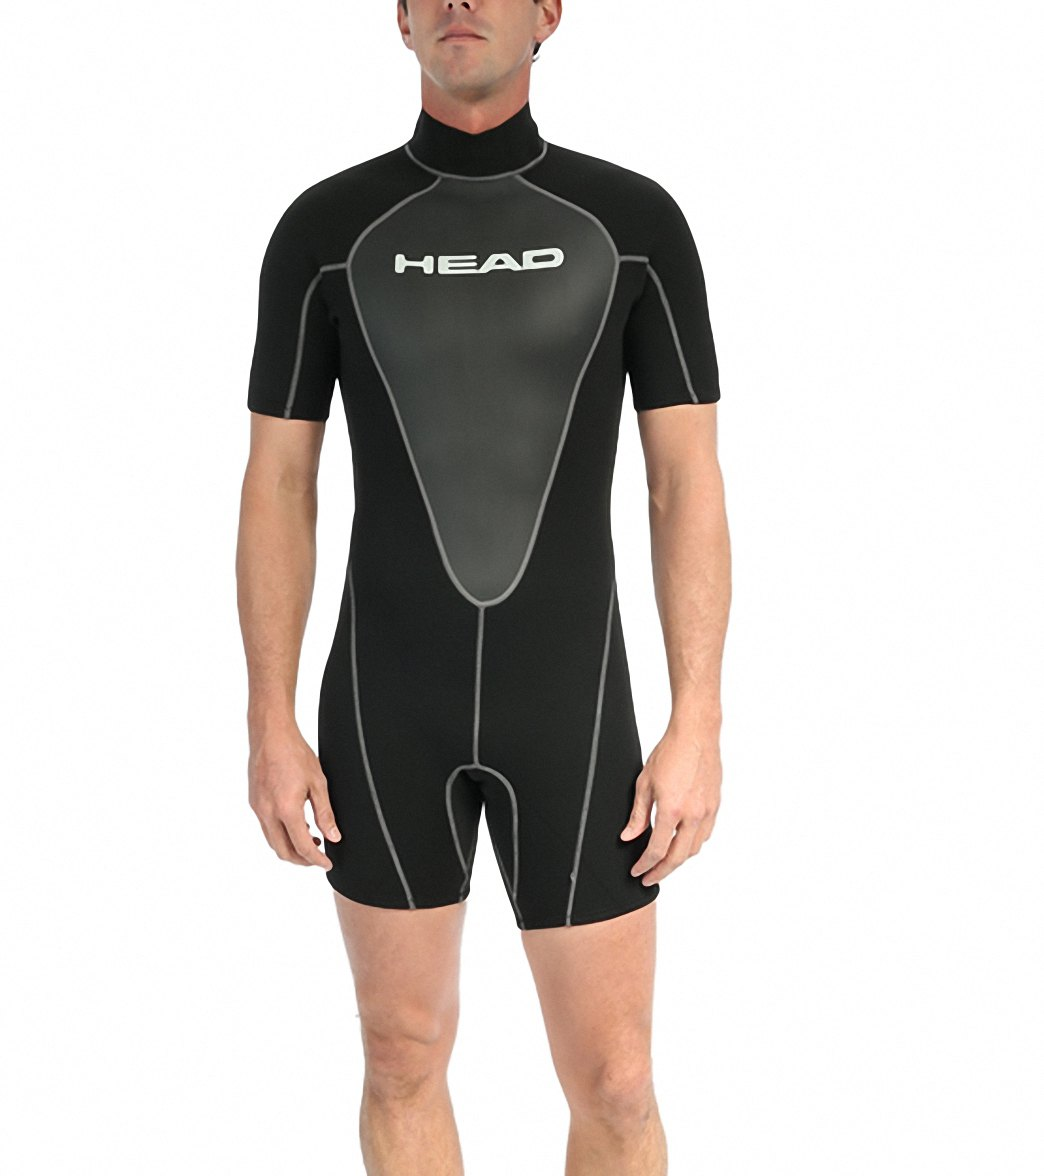 HEAD Wave 2.5 Men s Shorty Wetsuit at SwimOutlet.com - Free Shipping 0e3c209b7